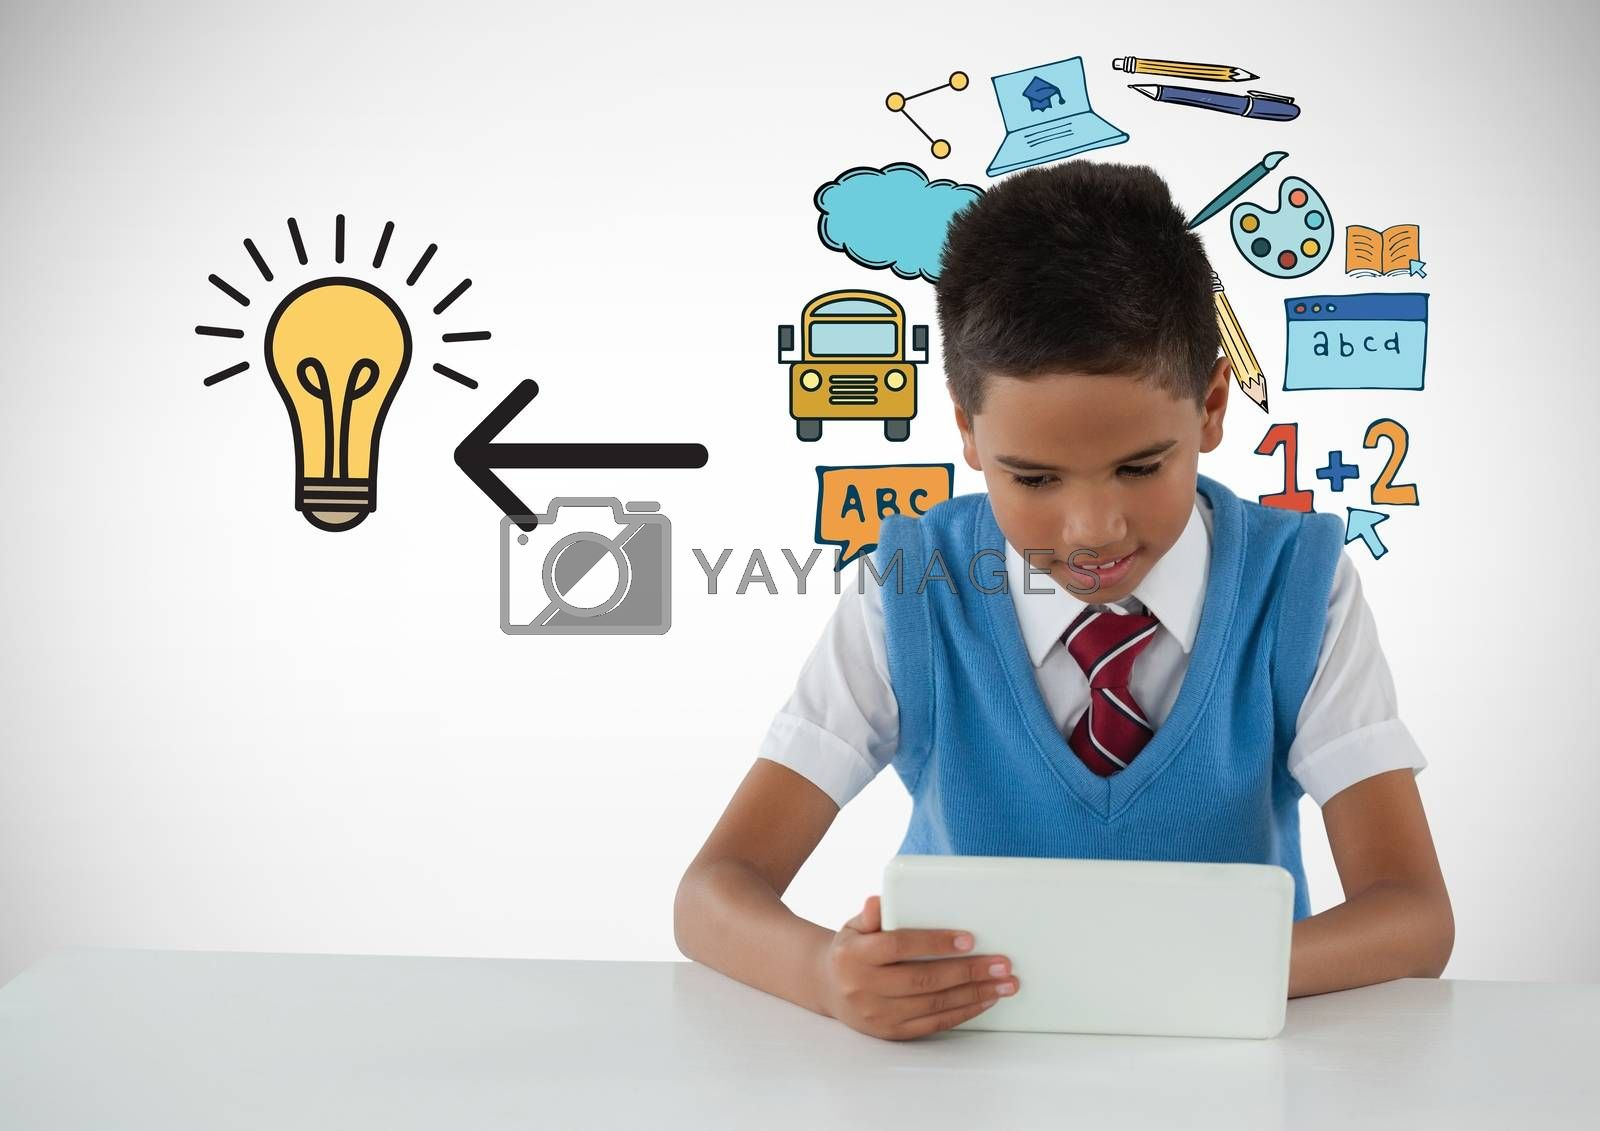 Schoolboy on tablet with education light bulb graphics by Wavebreakmedia